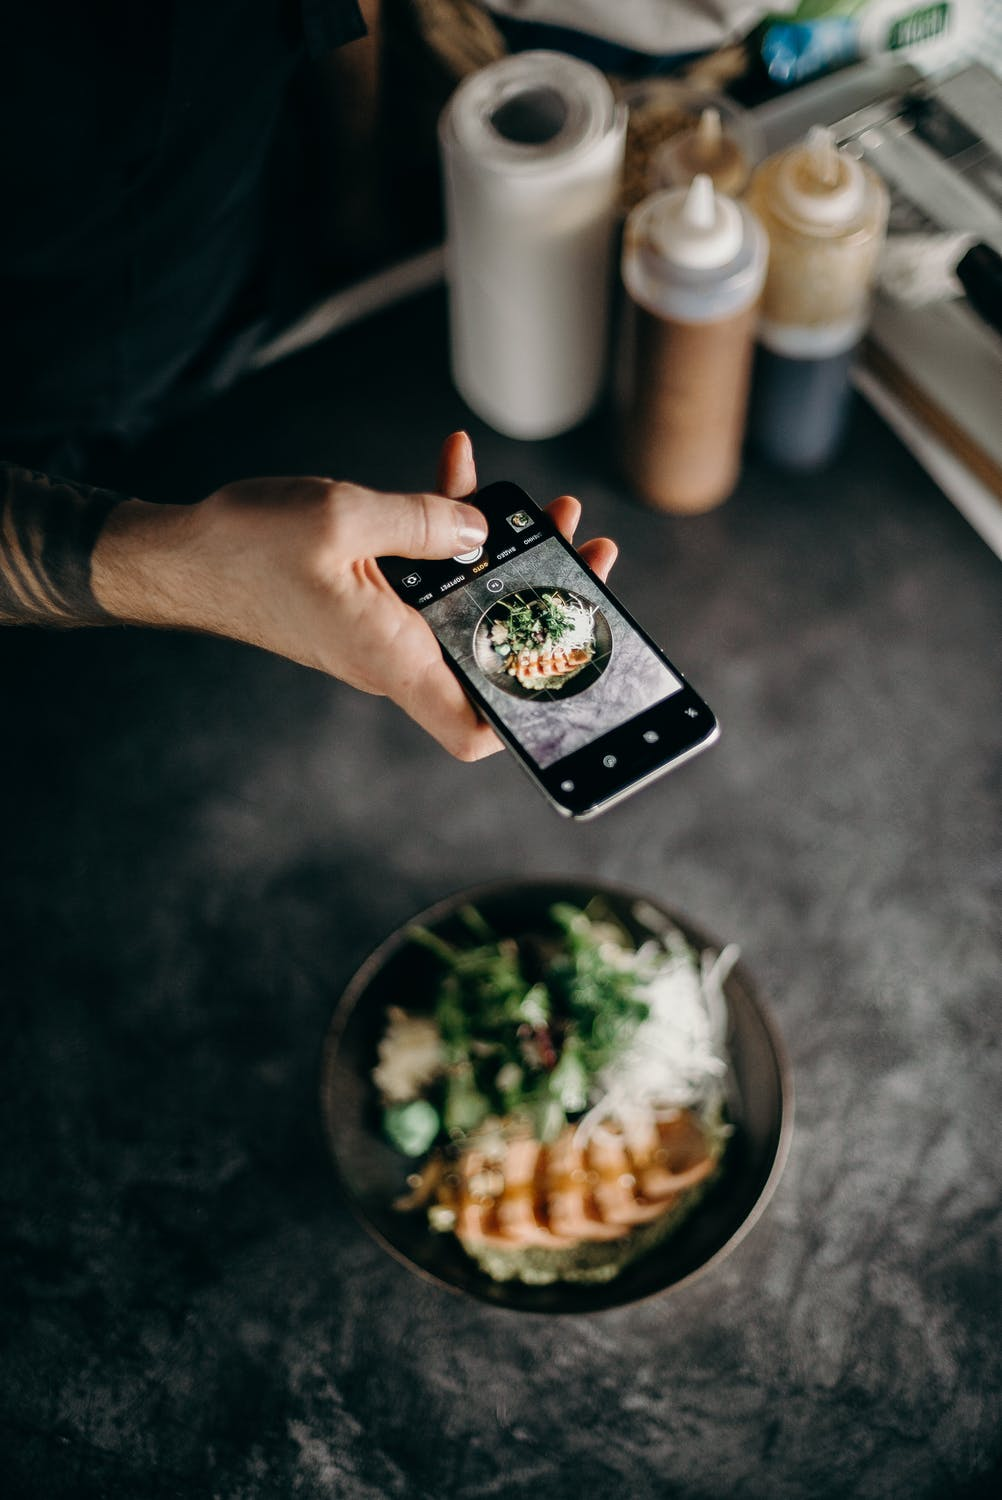 Pros and cons of instagram man taking photo of a bowl of food on mobile phone